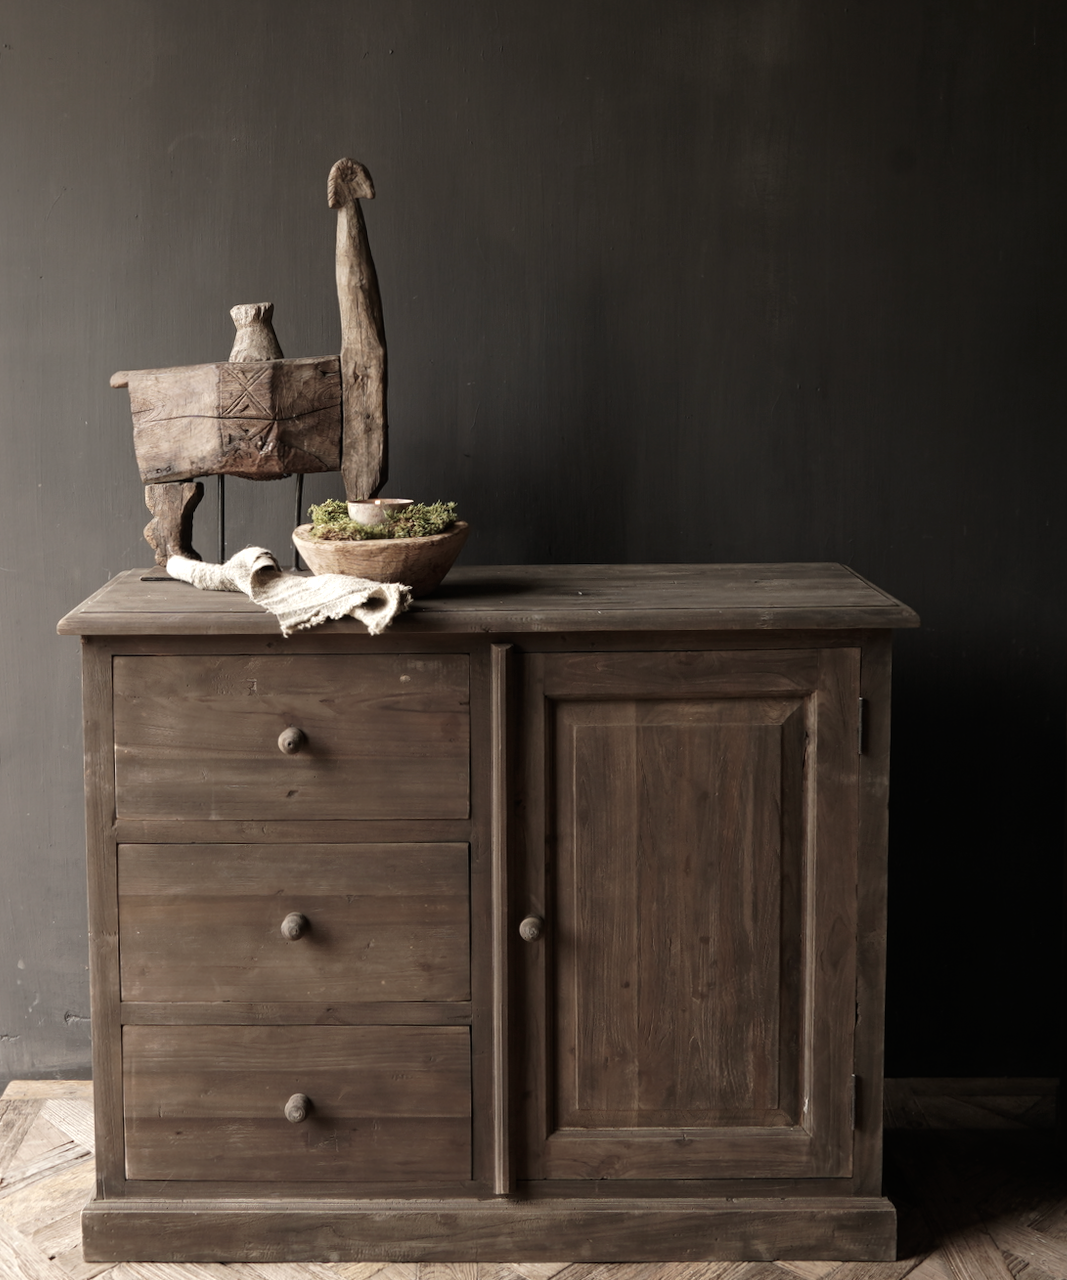 Old wooden drawer cabinet with a door Lieke-1